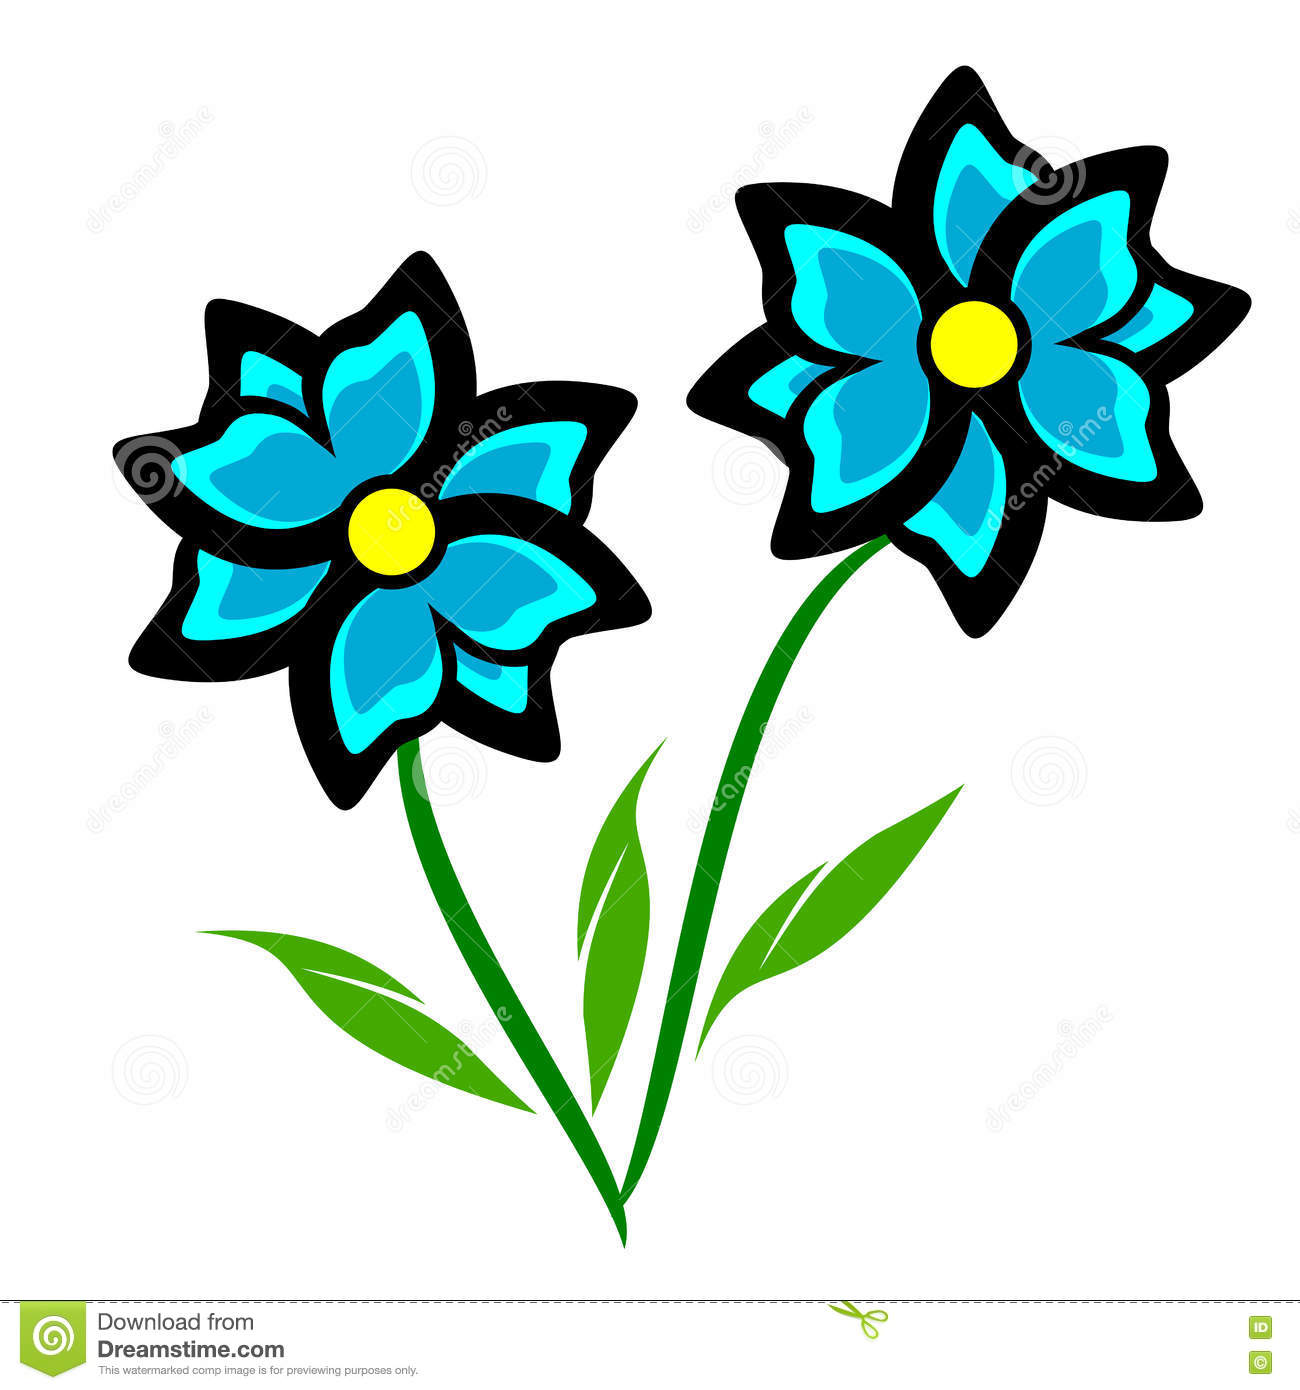 Clipart flowers and leaves graphic royalty free download Blue Flowers with Leaves Clip Art – Clipart Free Download graphic royalty free download